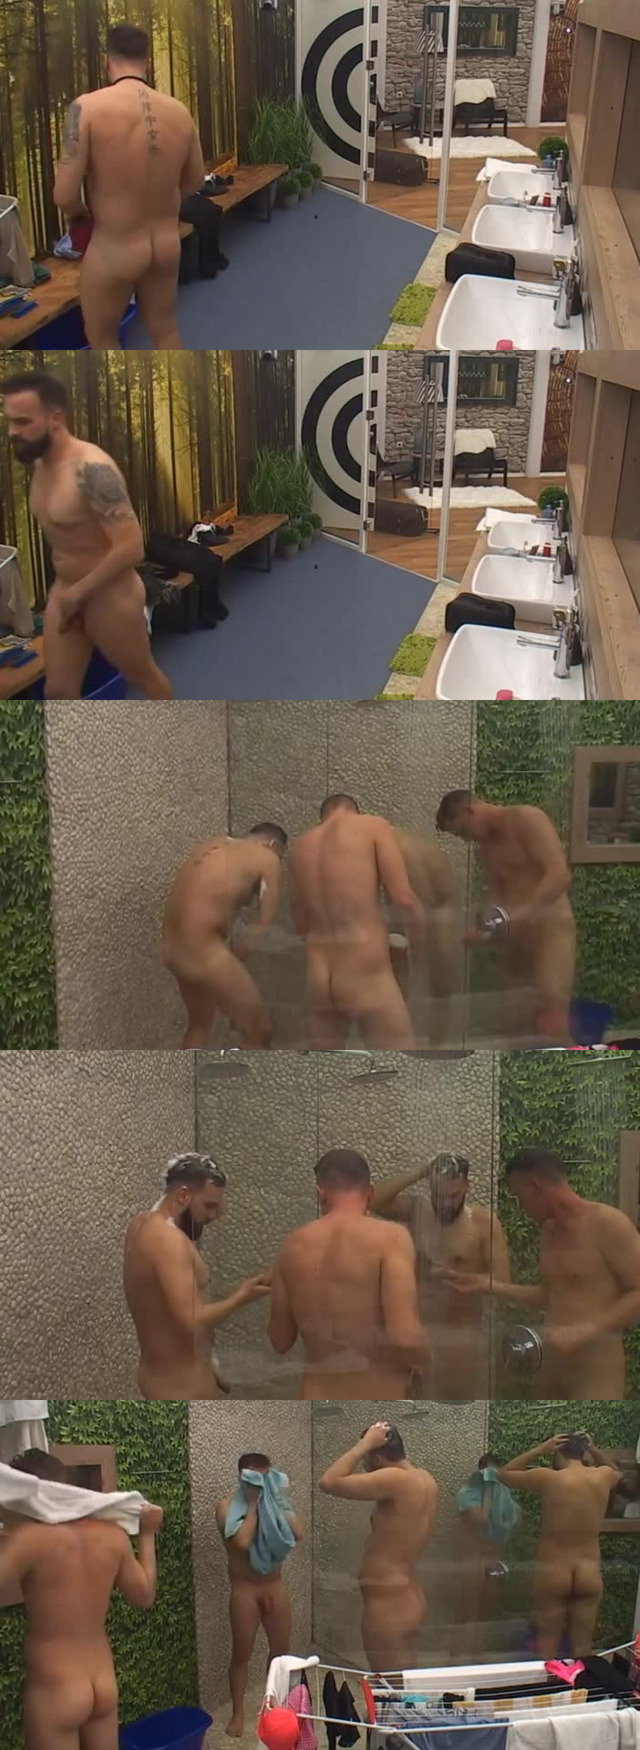 big-brother-male-group-shower-full-frontal